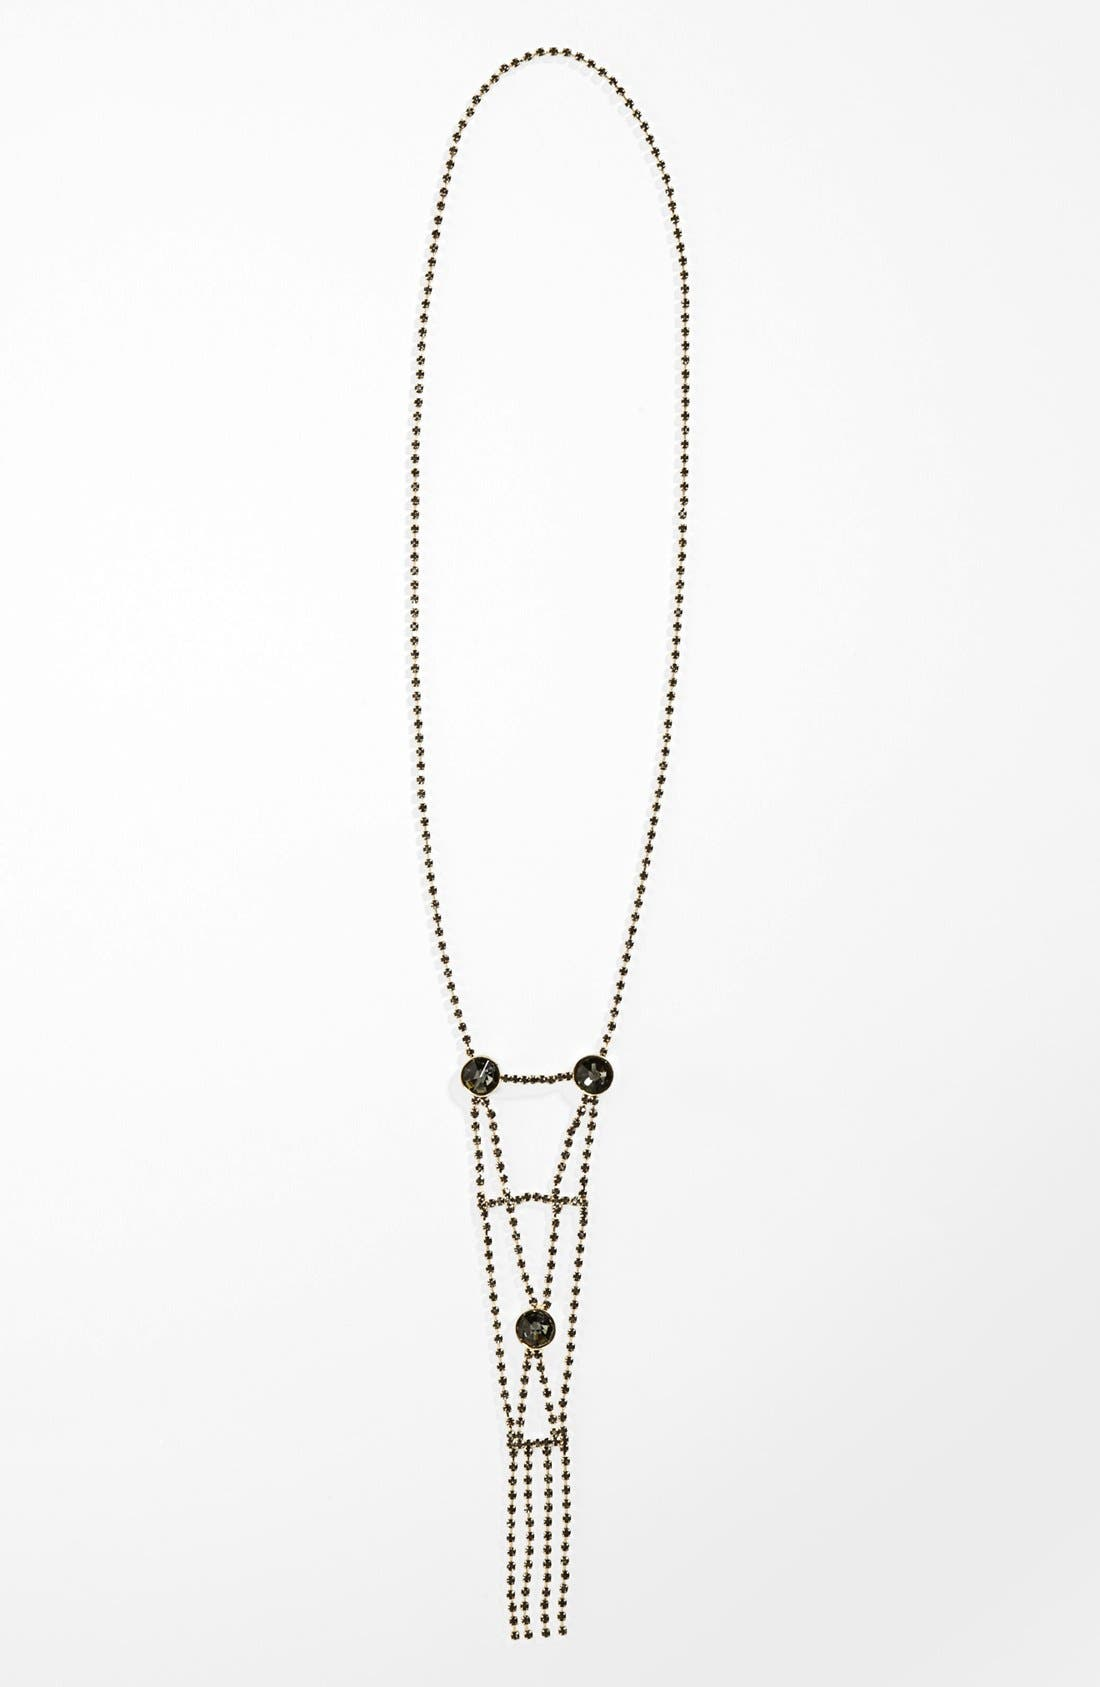 Alternate Image 1 Selected - Carbon Copy Chain Necklace